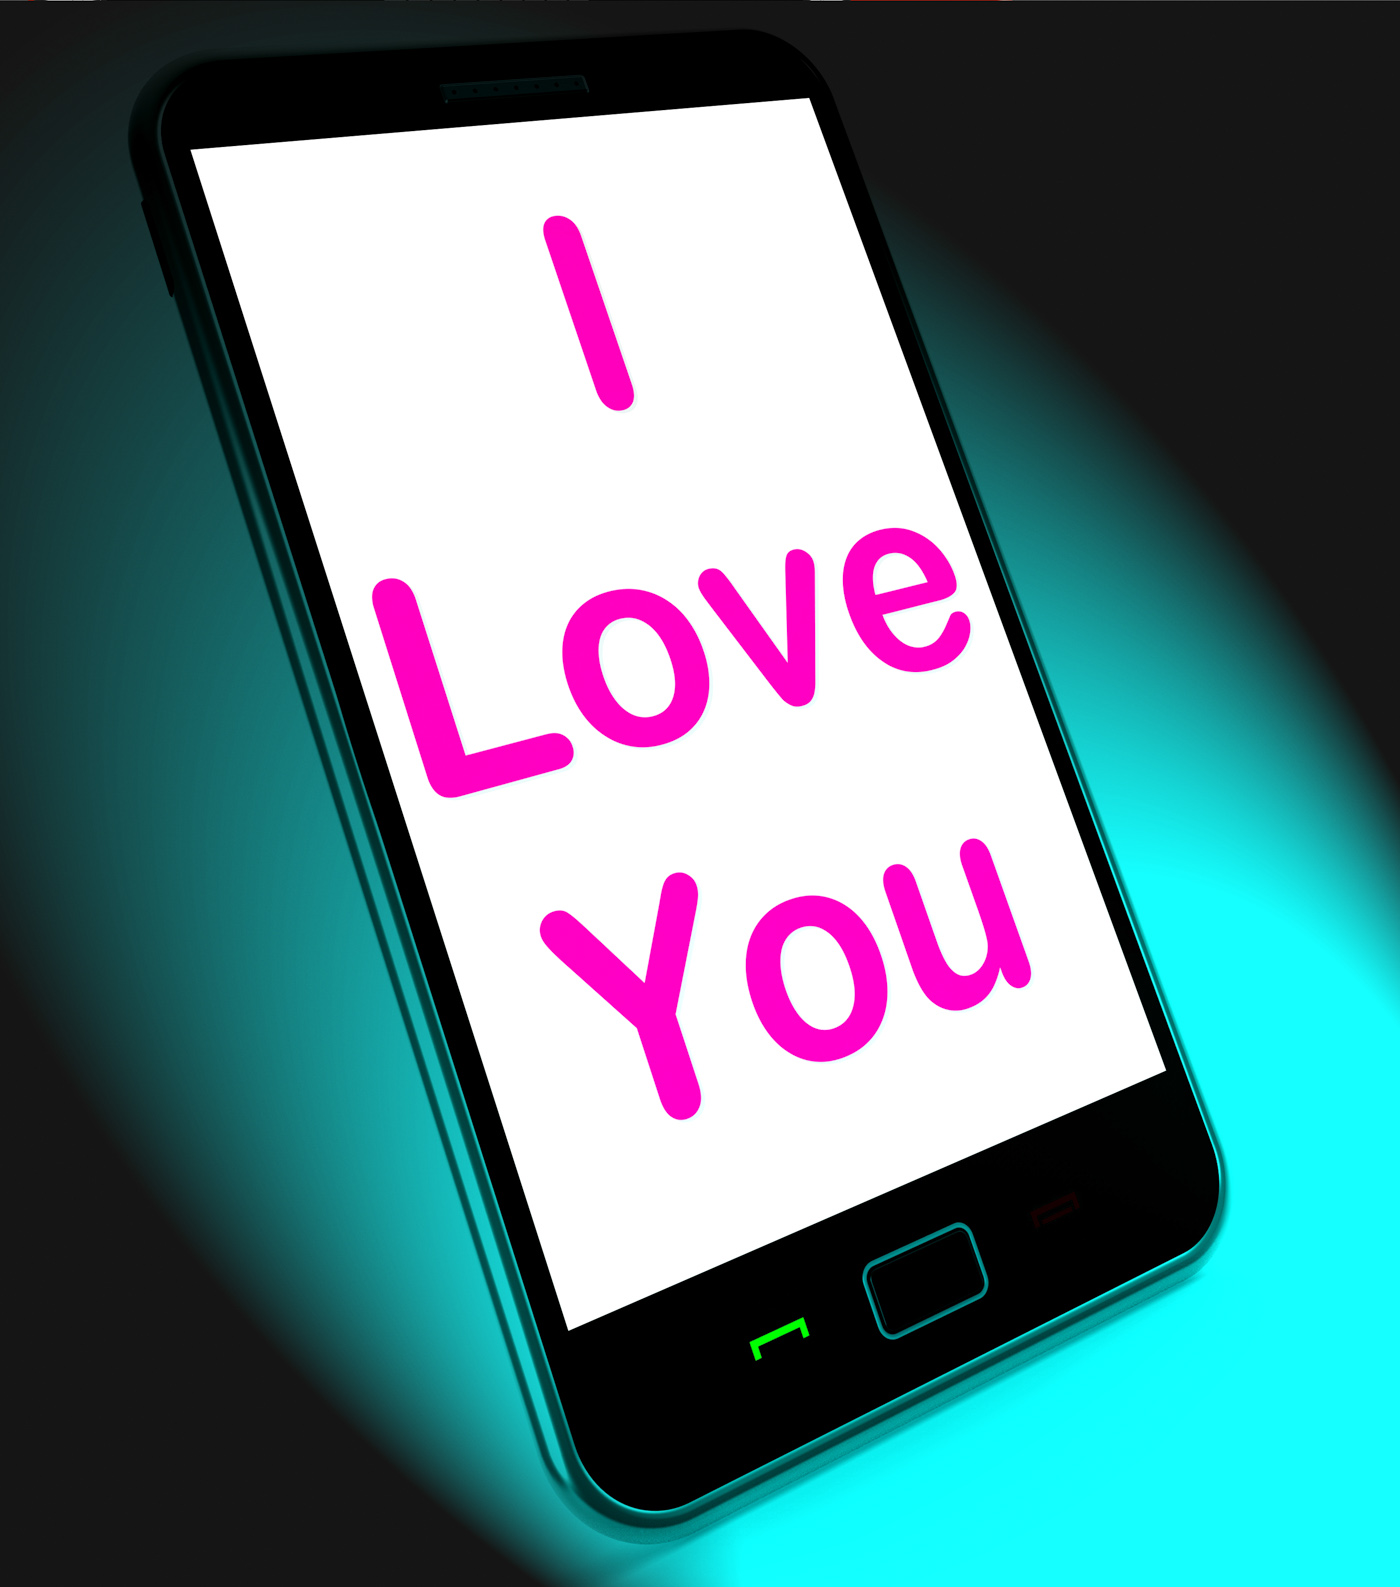 I love you on mobile shows adore romance photo